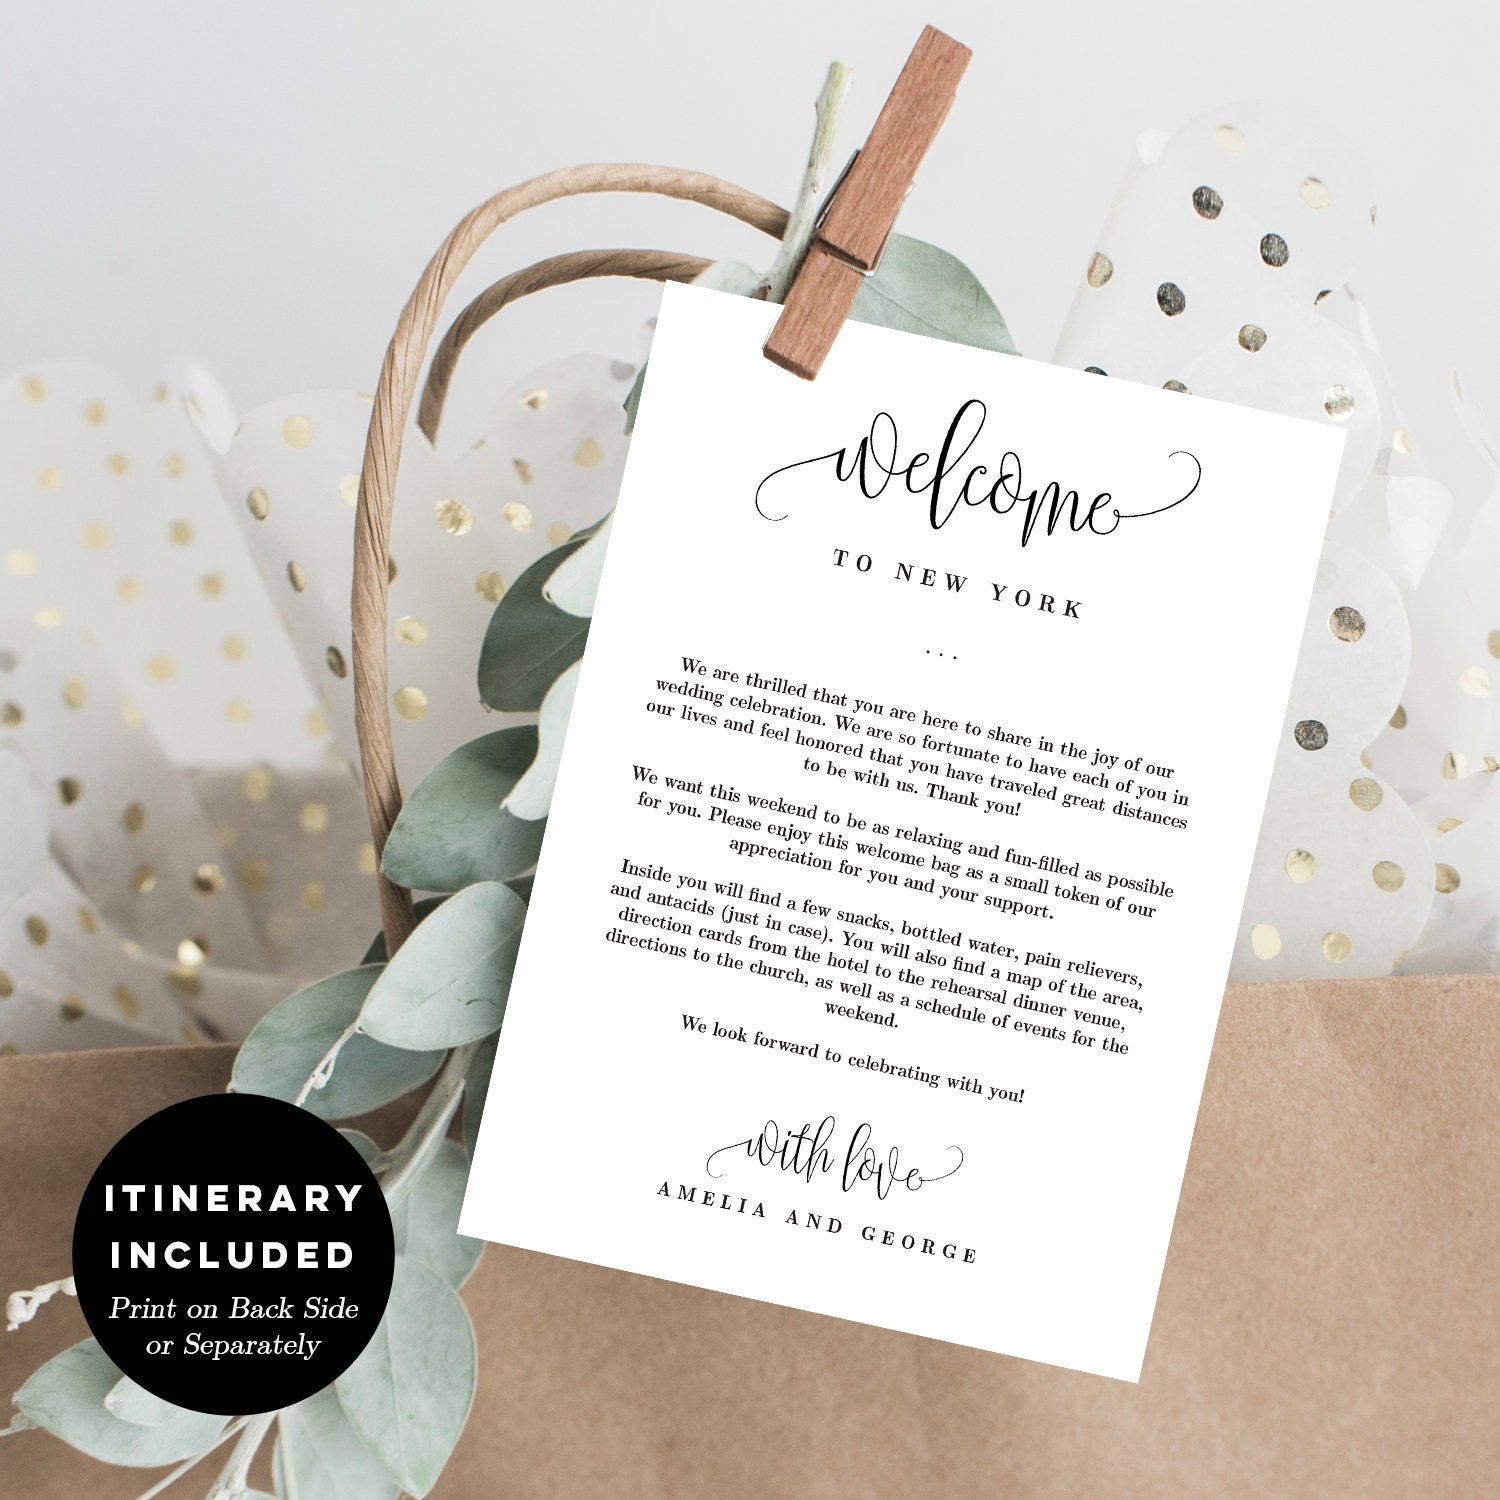 Wedding Welcome Thank You Letter And Wedding Itinerary Diy Etsy